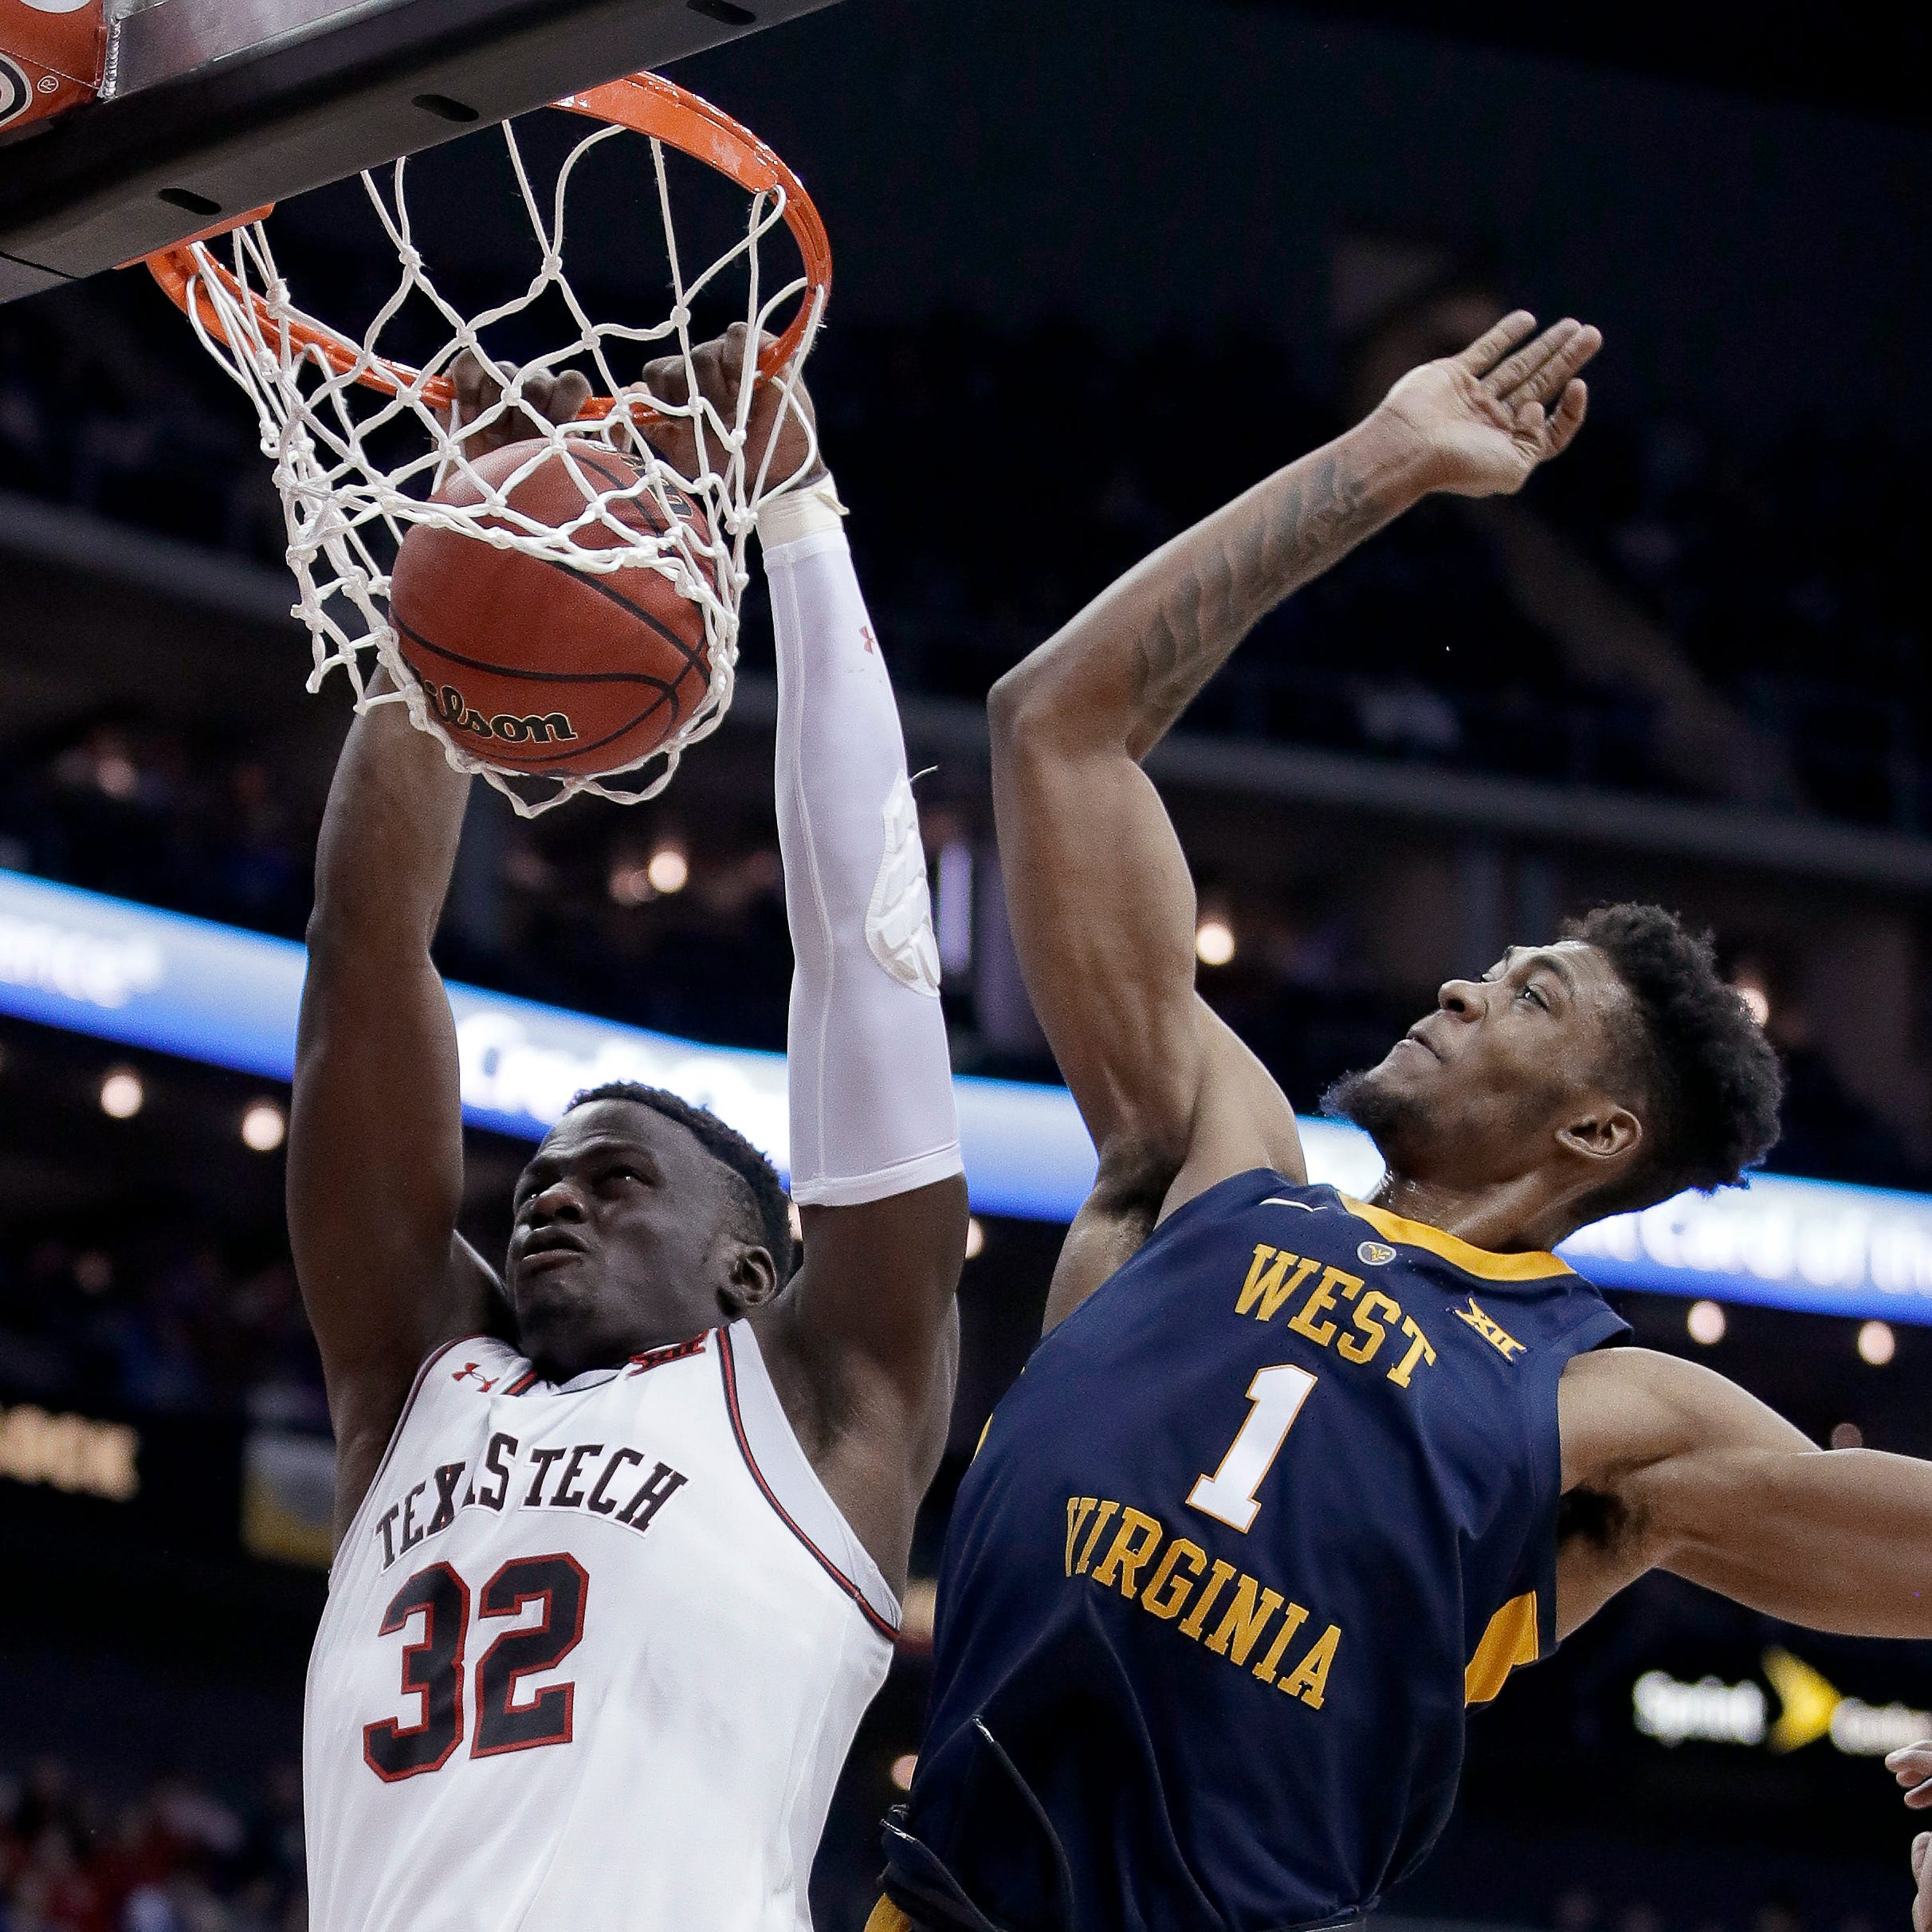 West Virginia upends No. 7 Texas Tech in Big 12 men's basketball tournament quarterfinals